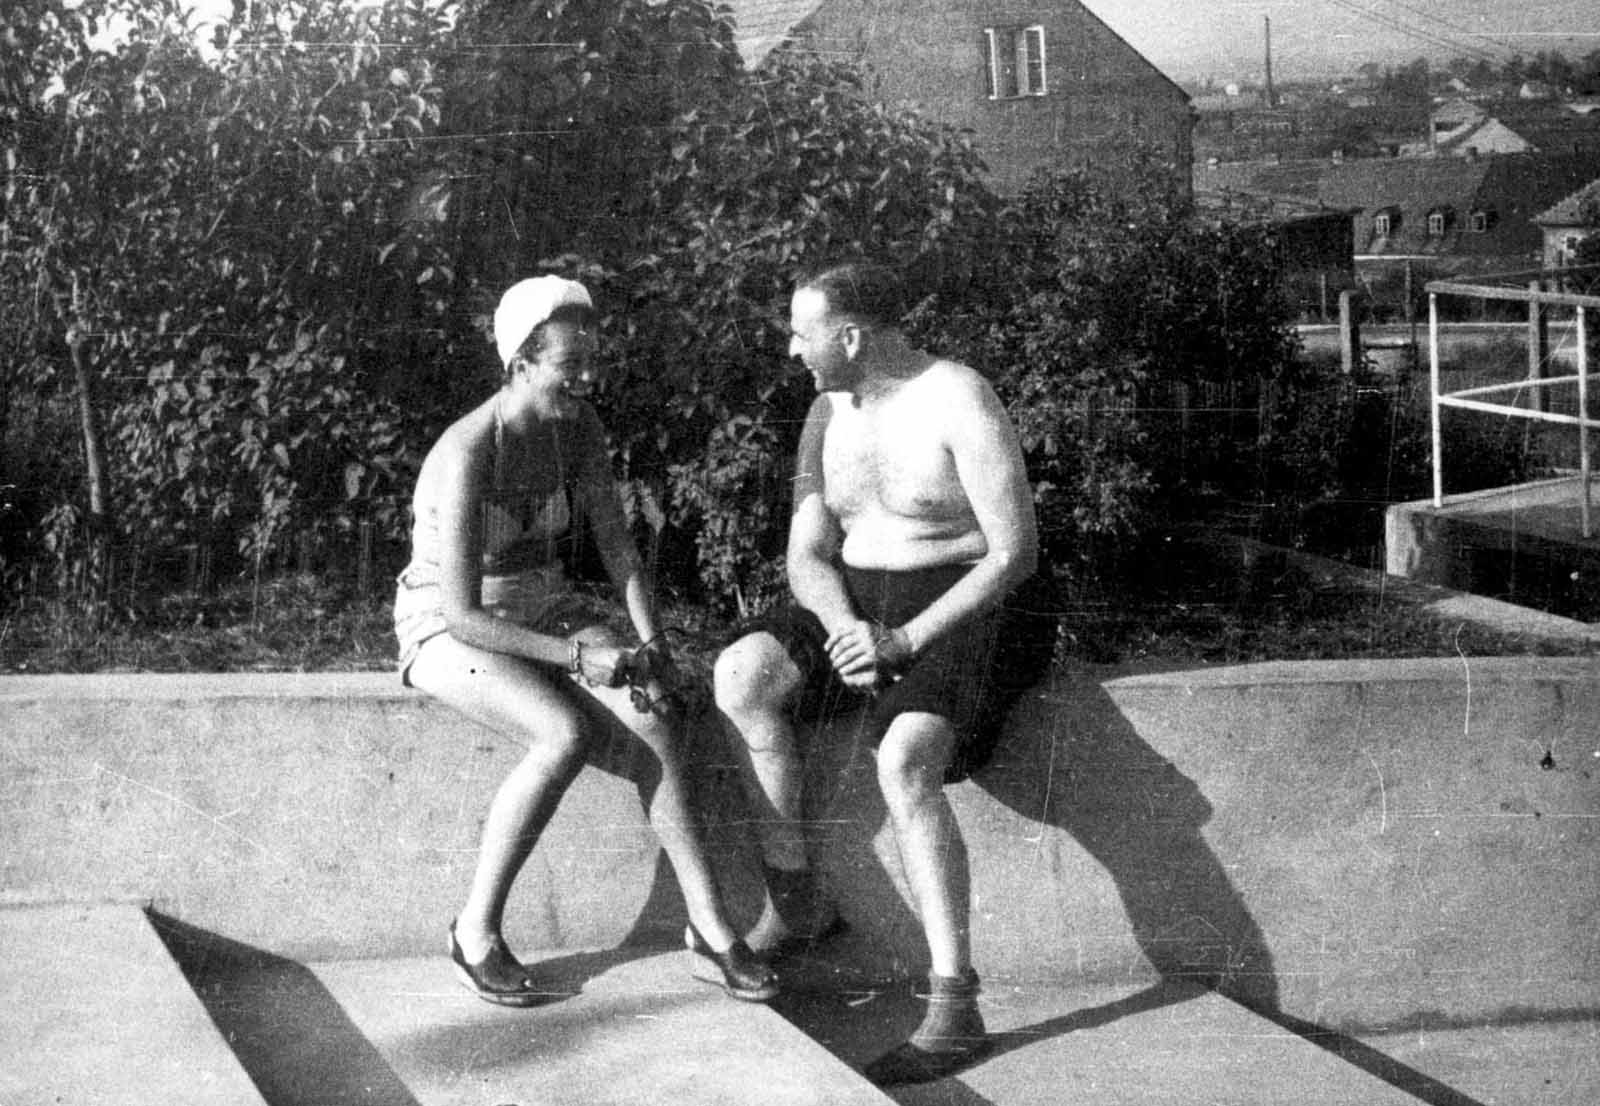 Camp Commandant Amon Goeth with his mistress, Majola (Ruth Irene Kalder). Kalder first met Göth in 1942 or early 1943 when she worked as a secretary at Oskar Schindler's enamelware factory in Kraków. She soon moved in with Göth and the two had an affair. She took Göth's name shortly after his death.